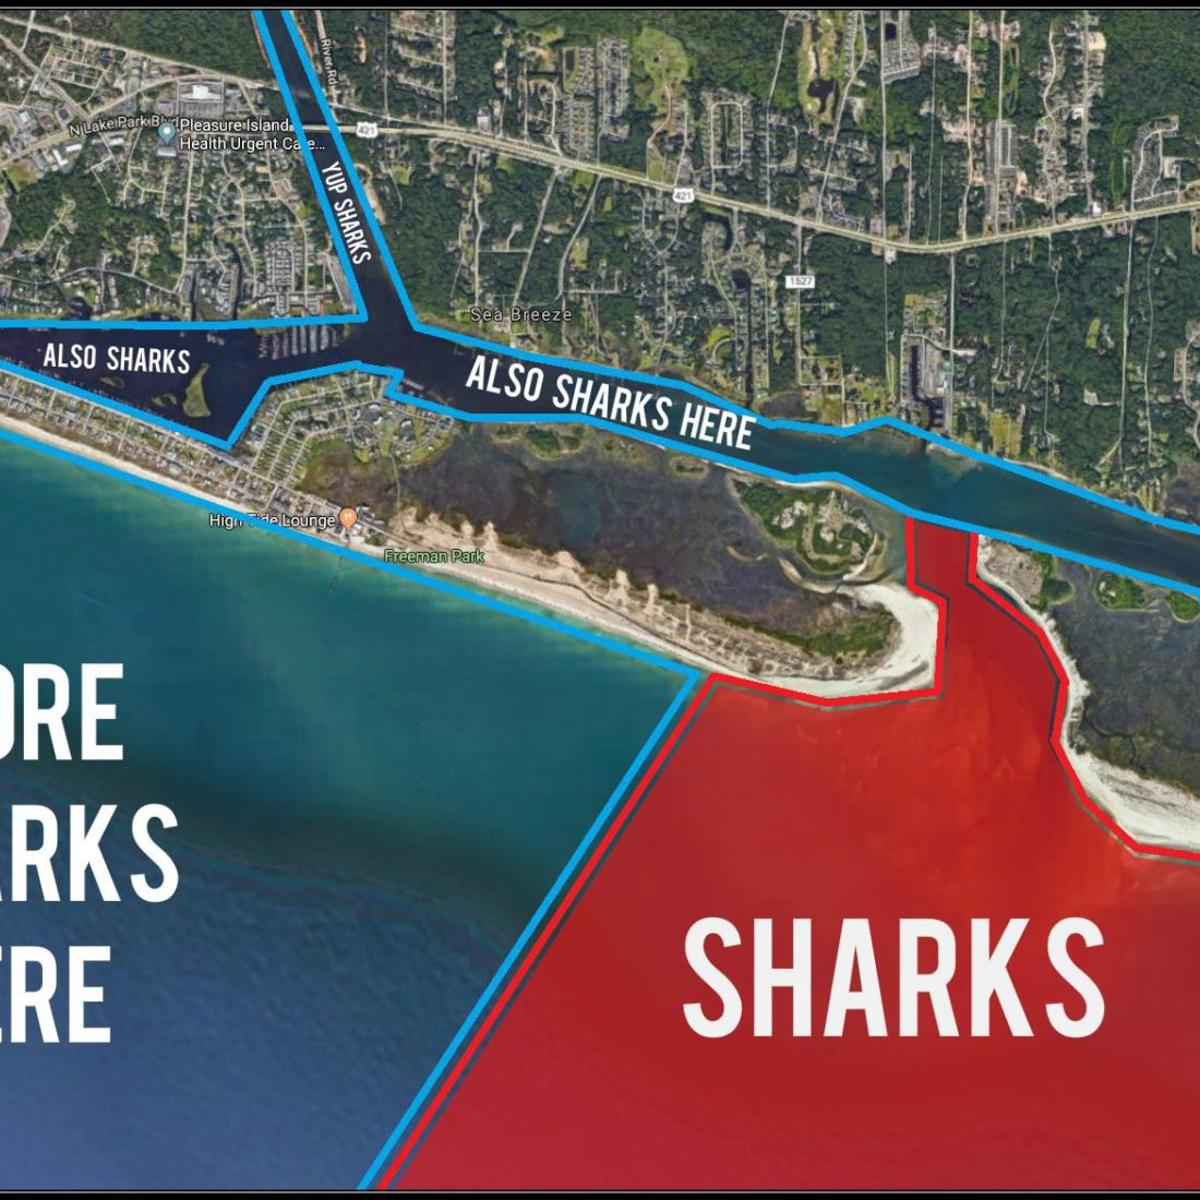 Shark mystery solved: New map shows exactly where sharks are ... on map of memphis tn, map of salemburg nc, map of hog island nc, map of asheville nc, map of griffin nc, map of charlottesville nc, map of biltmore forest nc, map of columbus ga, map of charlotte nc, map of orange co nc, map of ogden nc, map of raleigh nc, map of north carolina, map of bunnlevel nc, map of greenville nc, map of clarksville nc, map of moyock nc, map of saxapahaw nc, map of ferguson nc, map of atlanta,